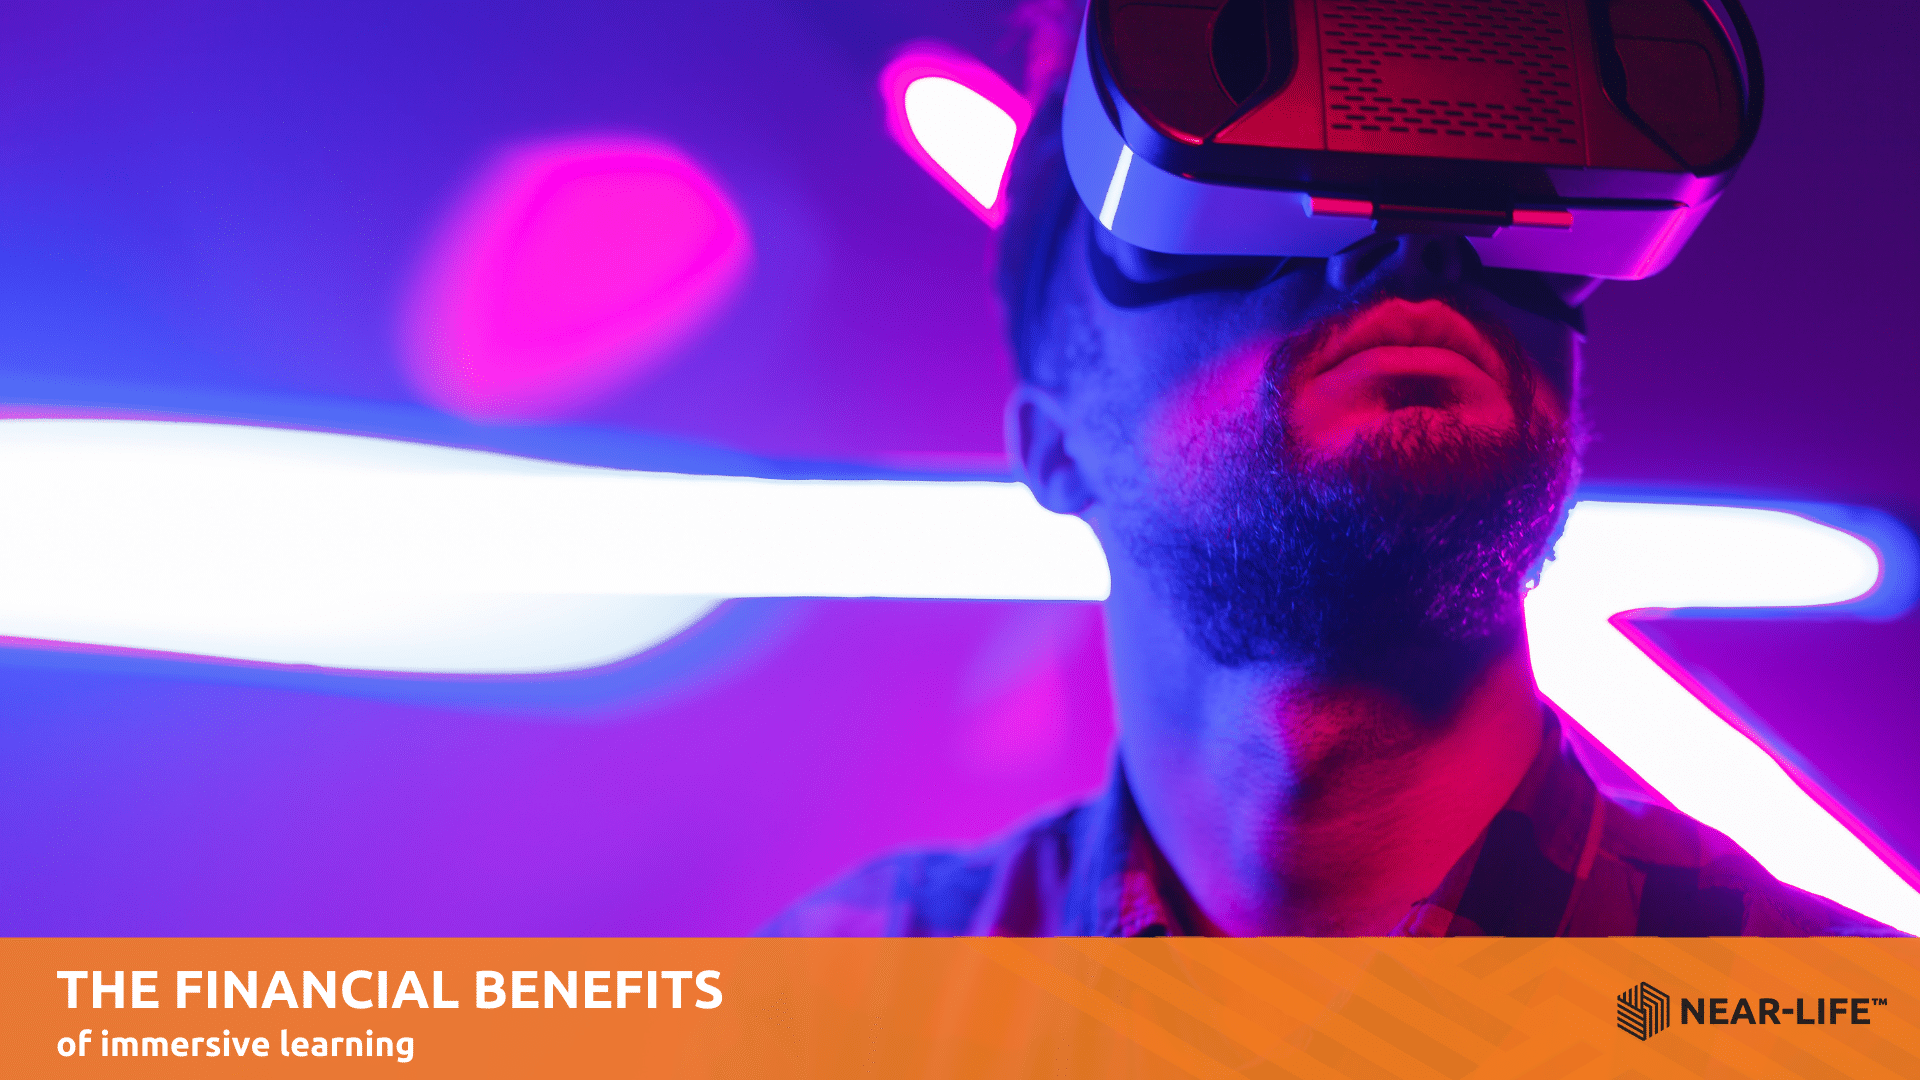 Male in VR headset for immersive learning